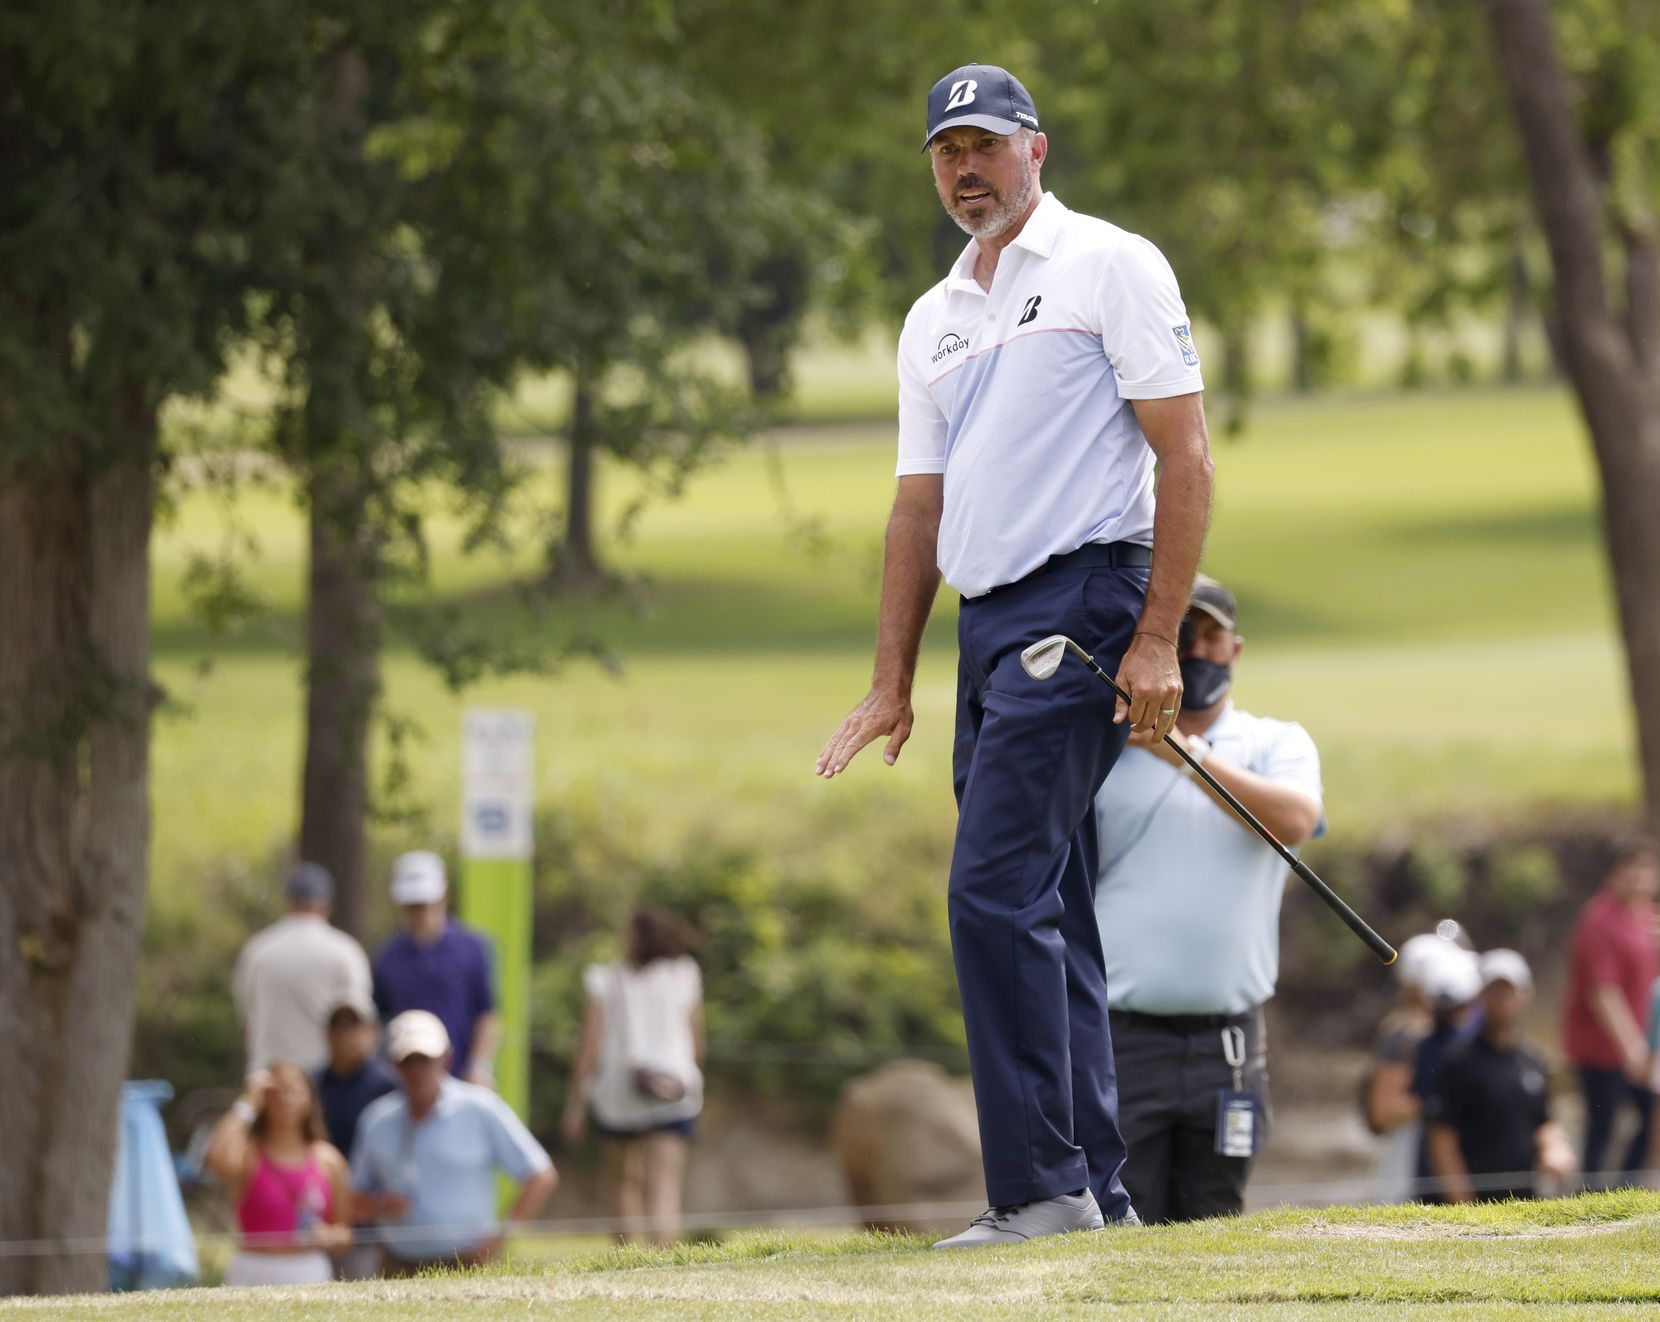 Matt Kuchar reacts as he watches his ball on the 14th hole during round 3 of the AT&T Byron Nelson  at TPC Craig Ranch on Saturday, May 15, 2021 in McKinney, Texas. (Vernon Bryant/The Dallas Morning News)